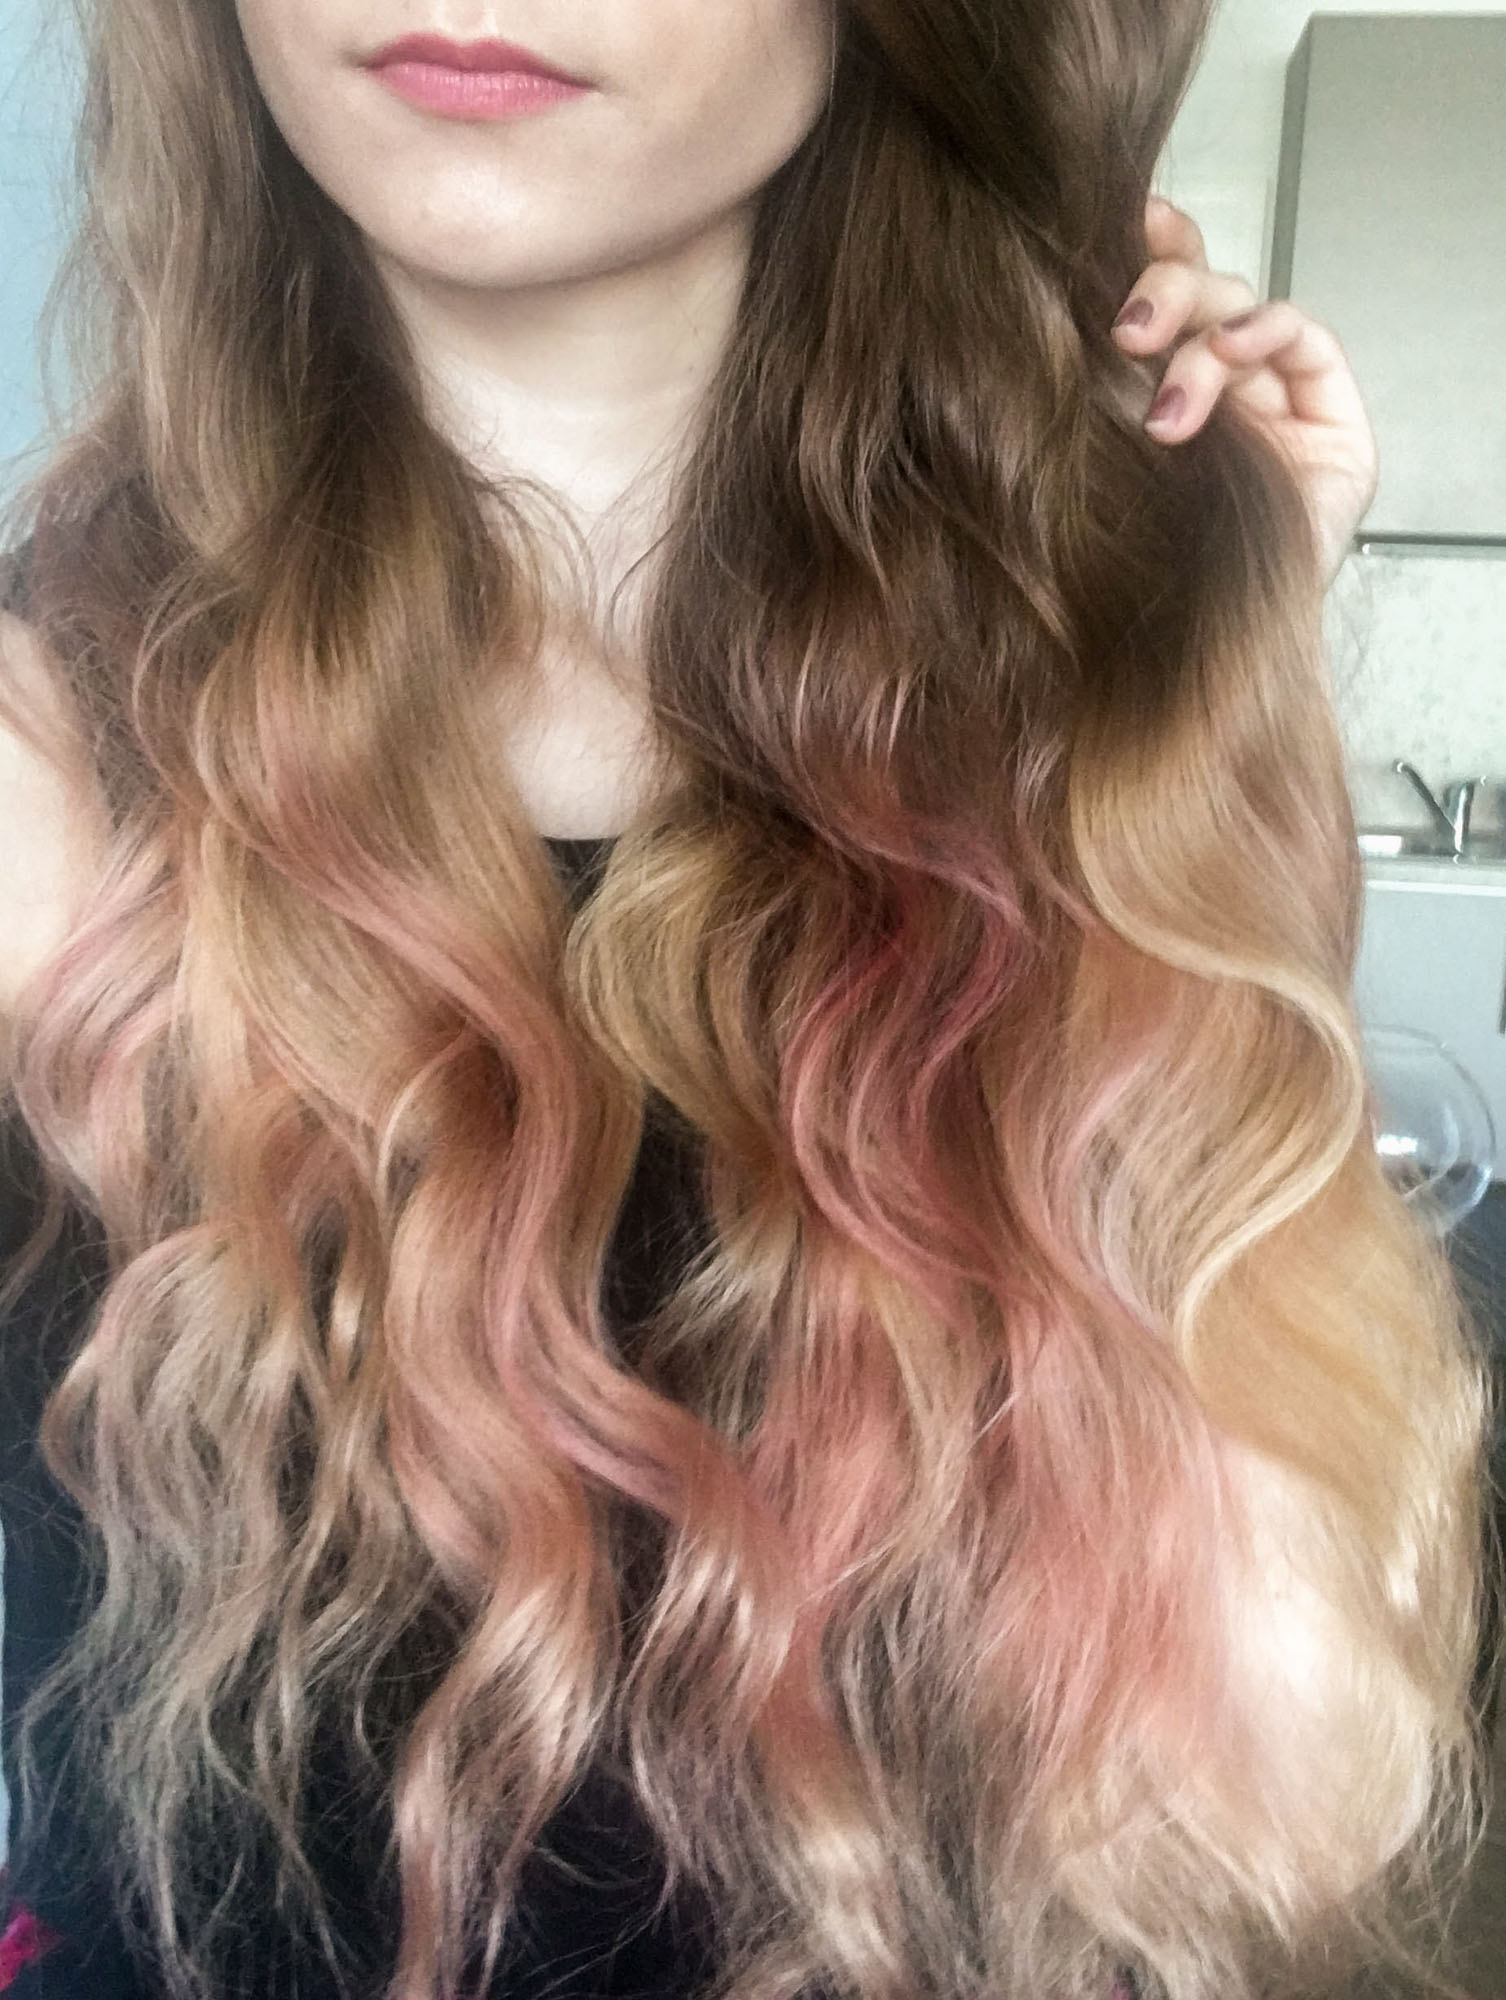 L'Oreal Colorista Washout Dirty Pink hair dye results on hair Cydonia